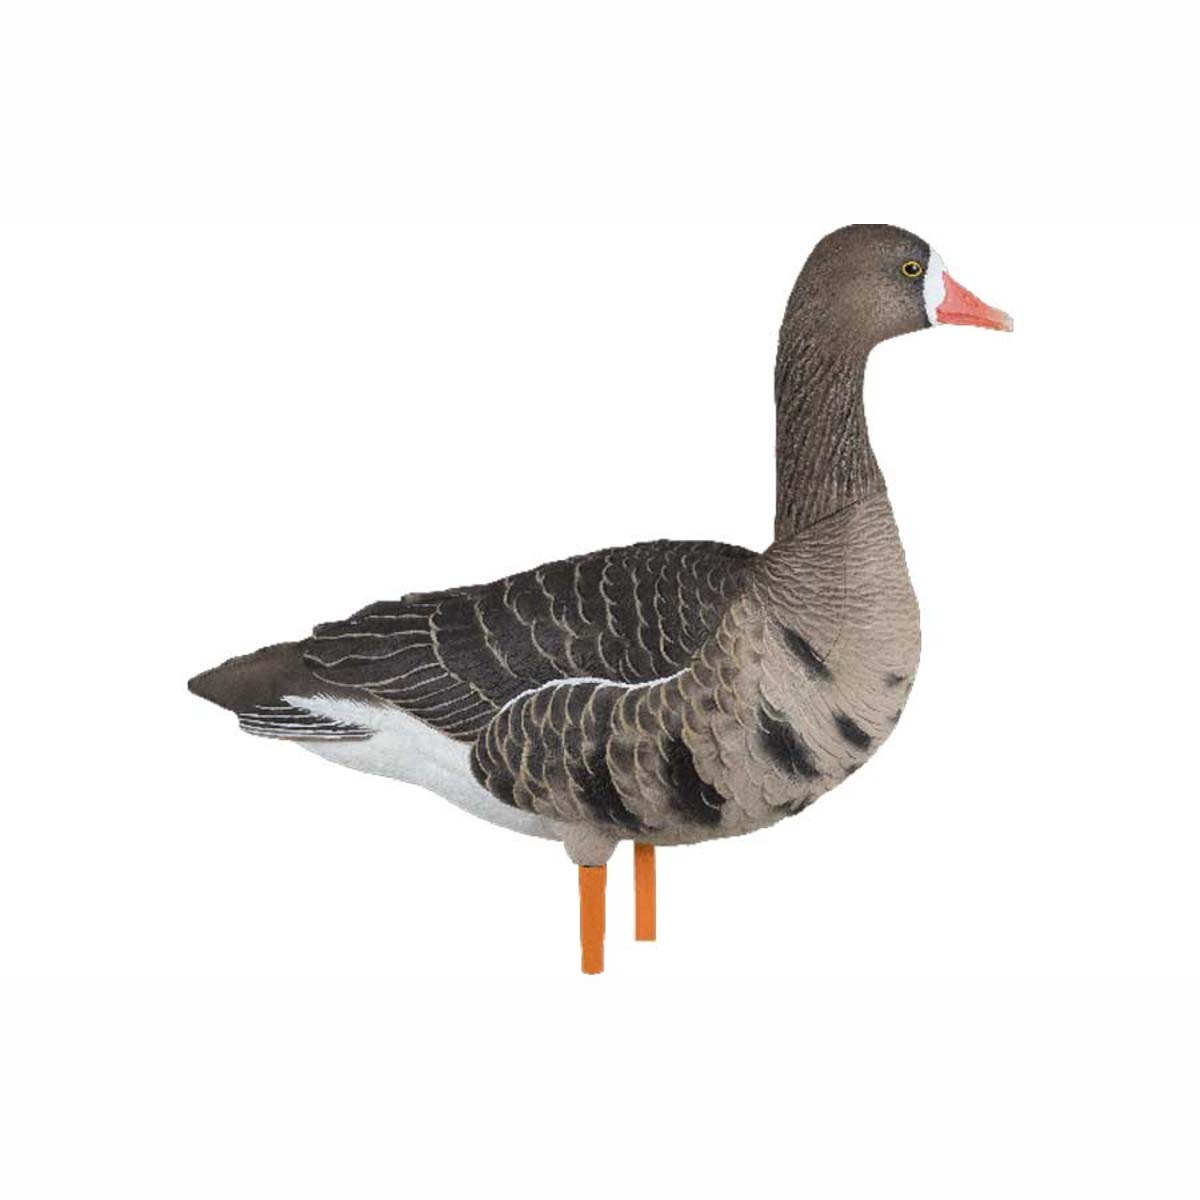 Avian-X AXF Flocked Fusion Specklebelly Geese, 6 Pack_1.jpg